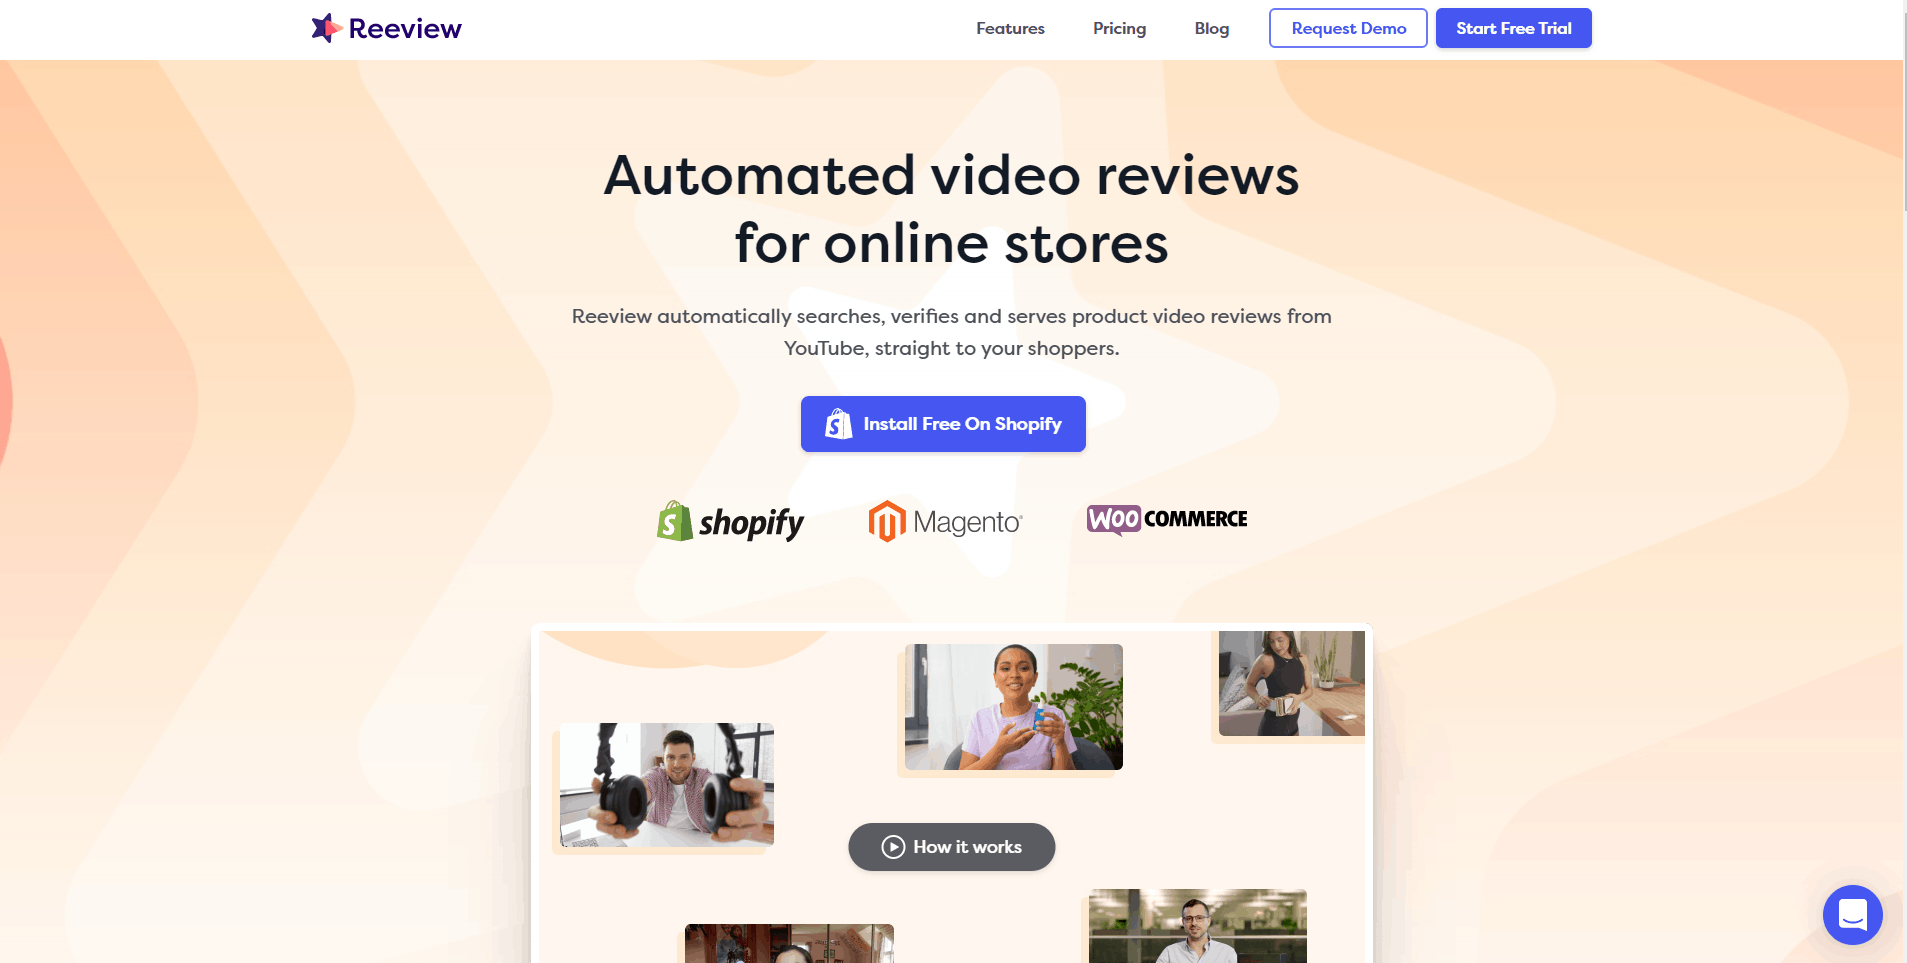 Reeview